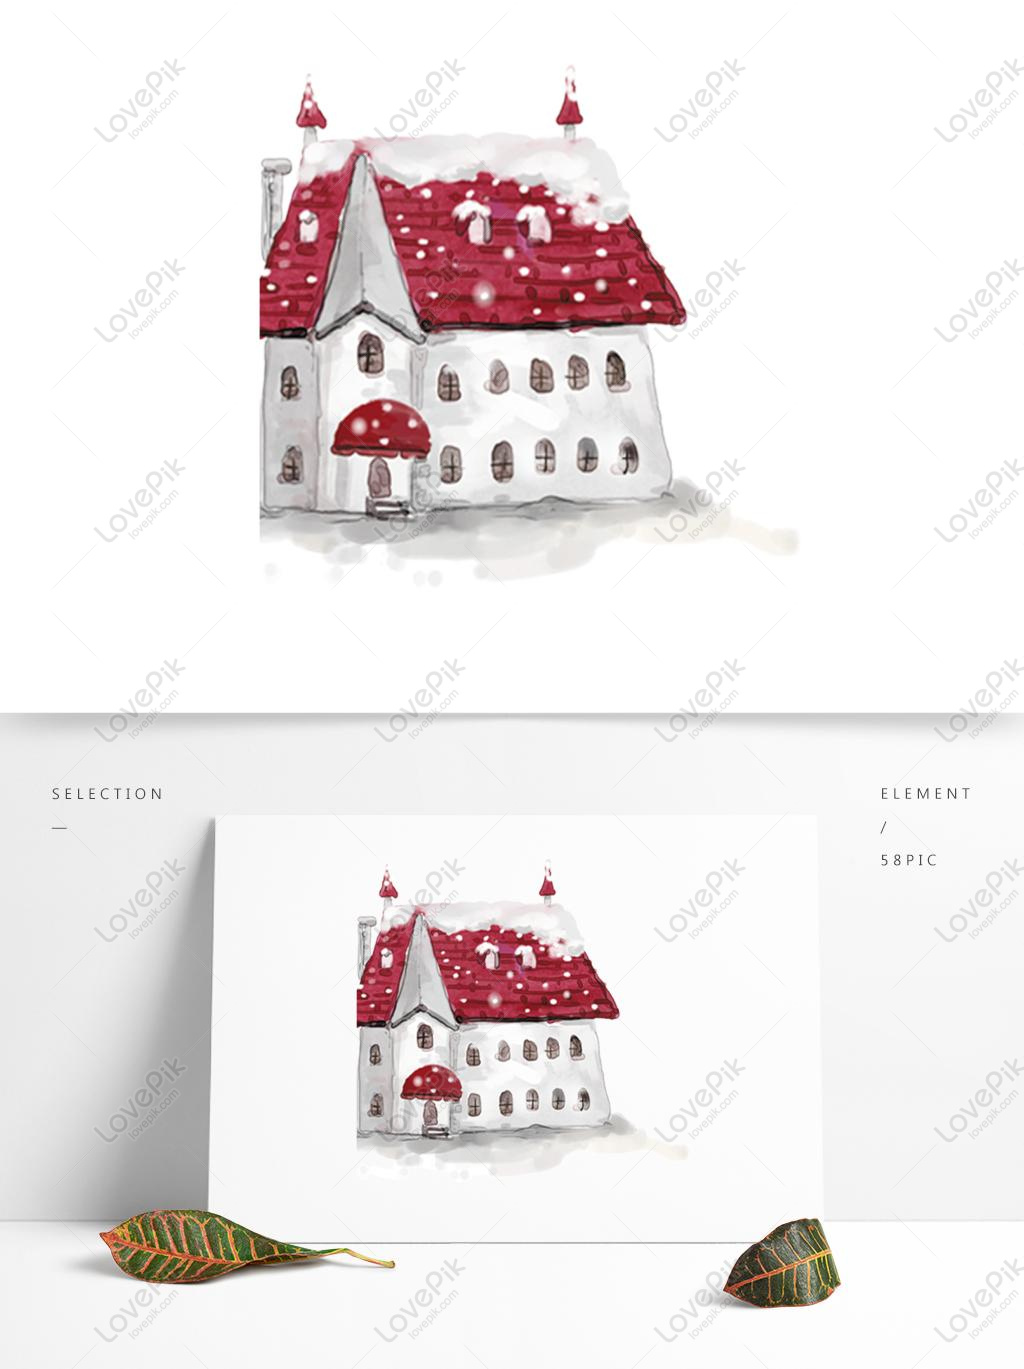 Cartoon Christmas House Png Element Psd Images Free Download 1369 1024 Px Lovepik Id 733492538